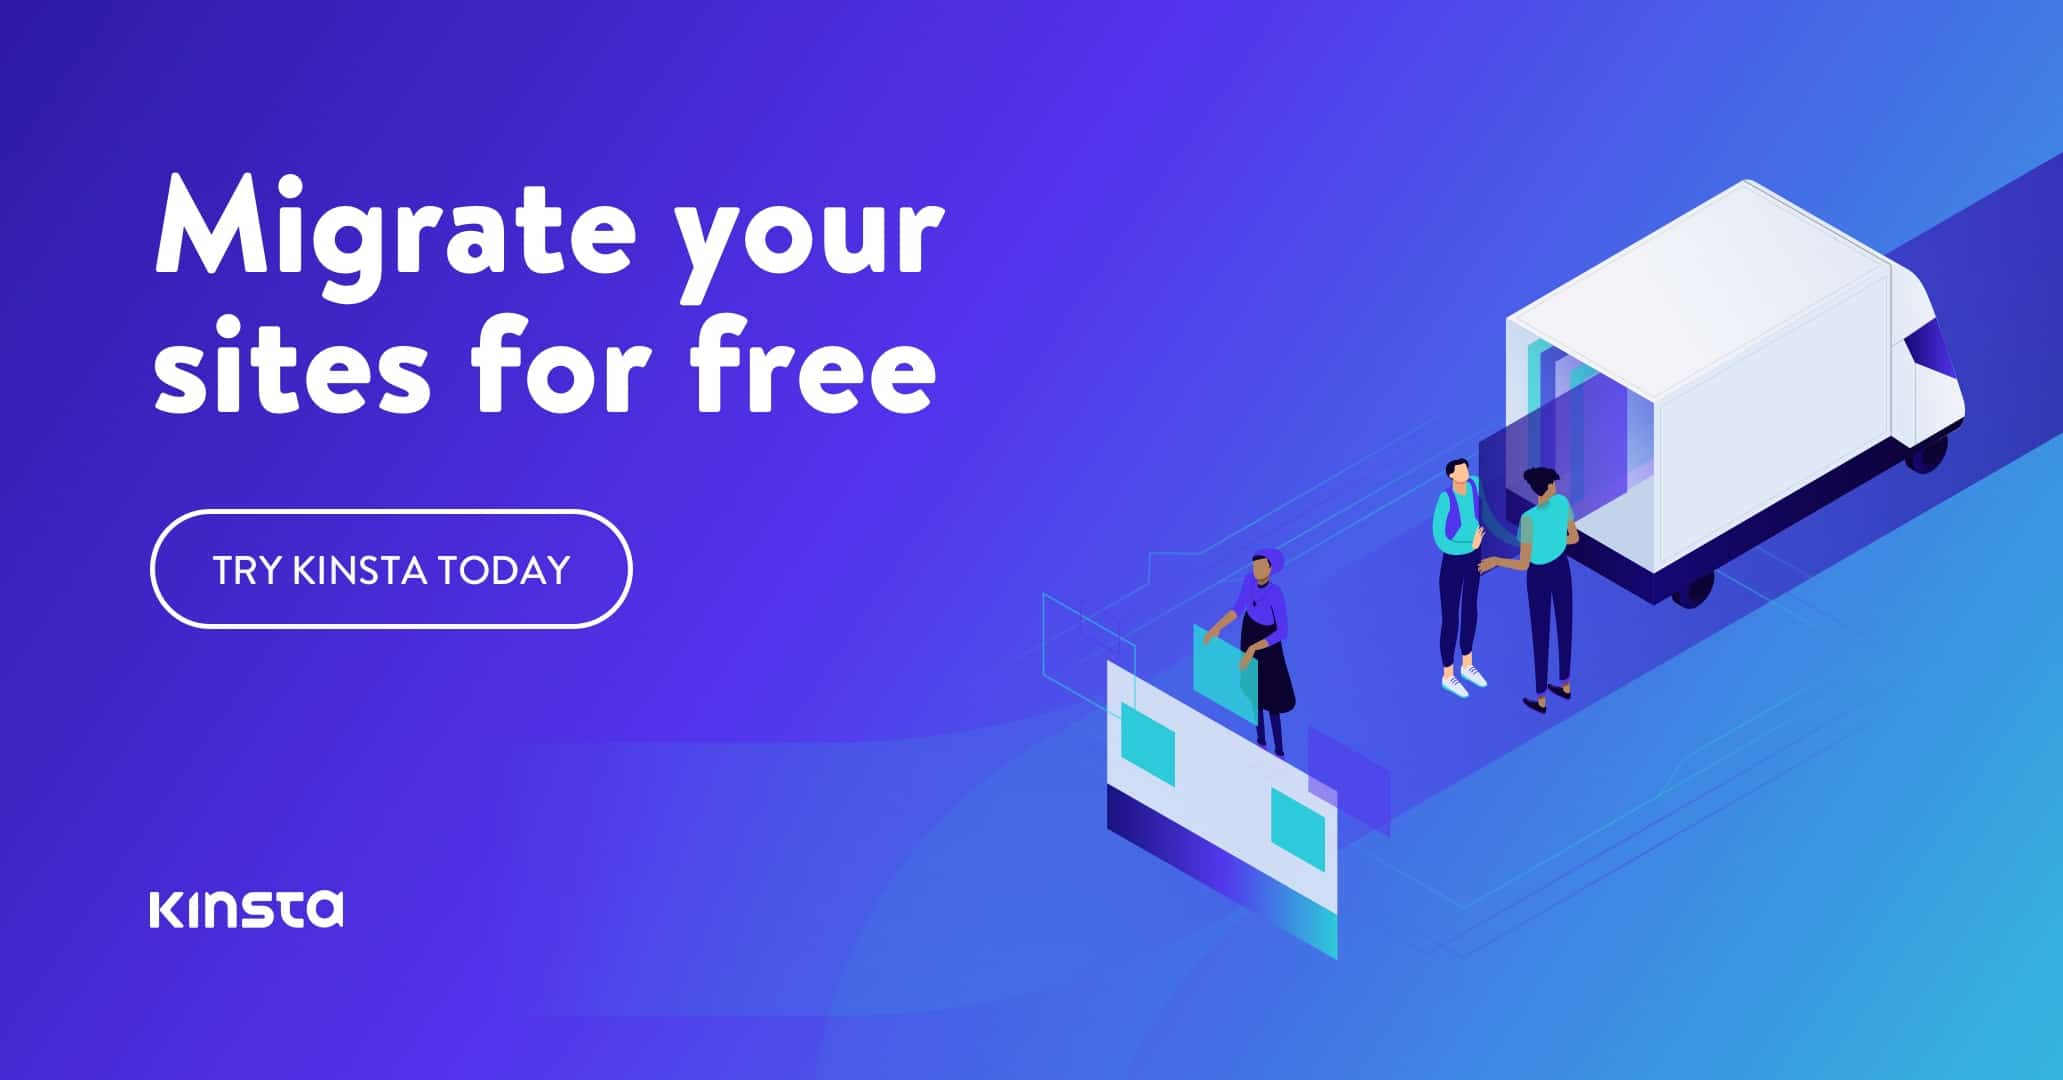 Managed WordPress Hosting with free migrations. Try Kinsta today